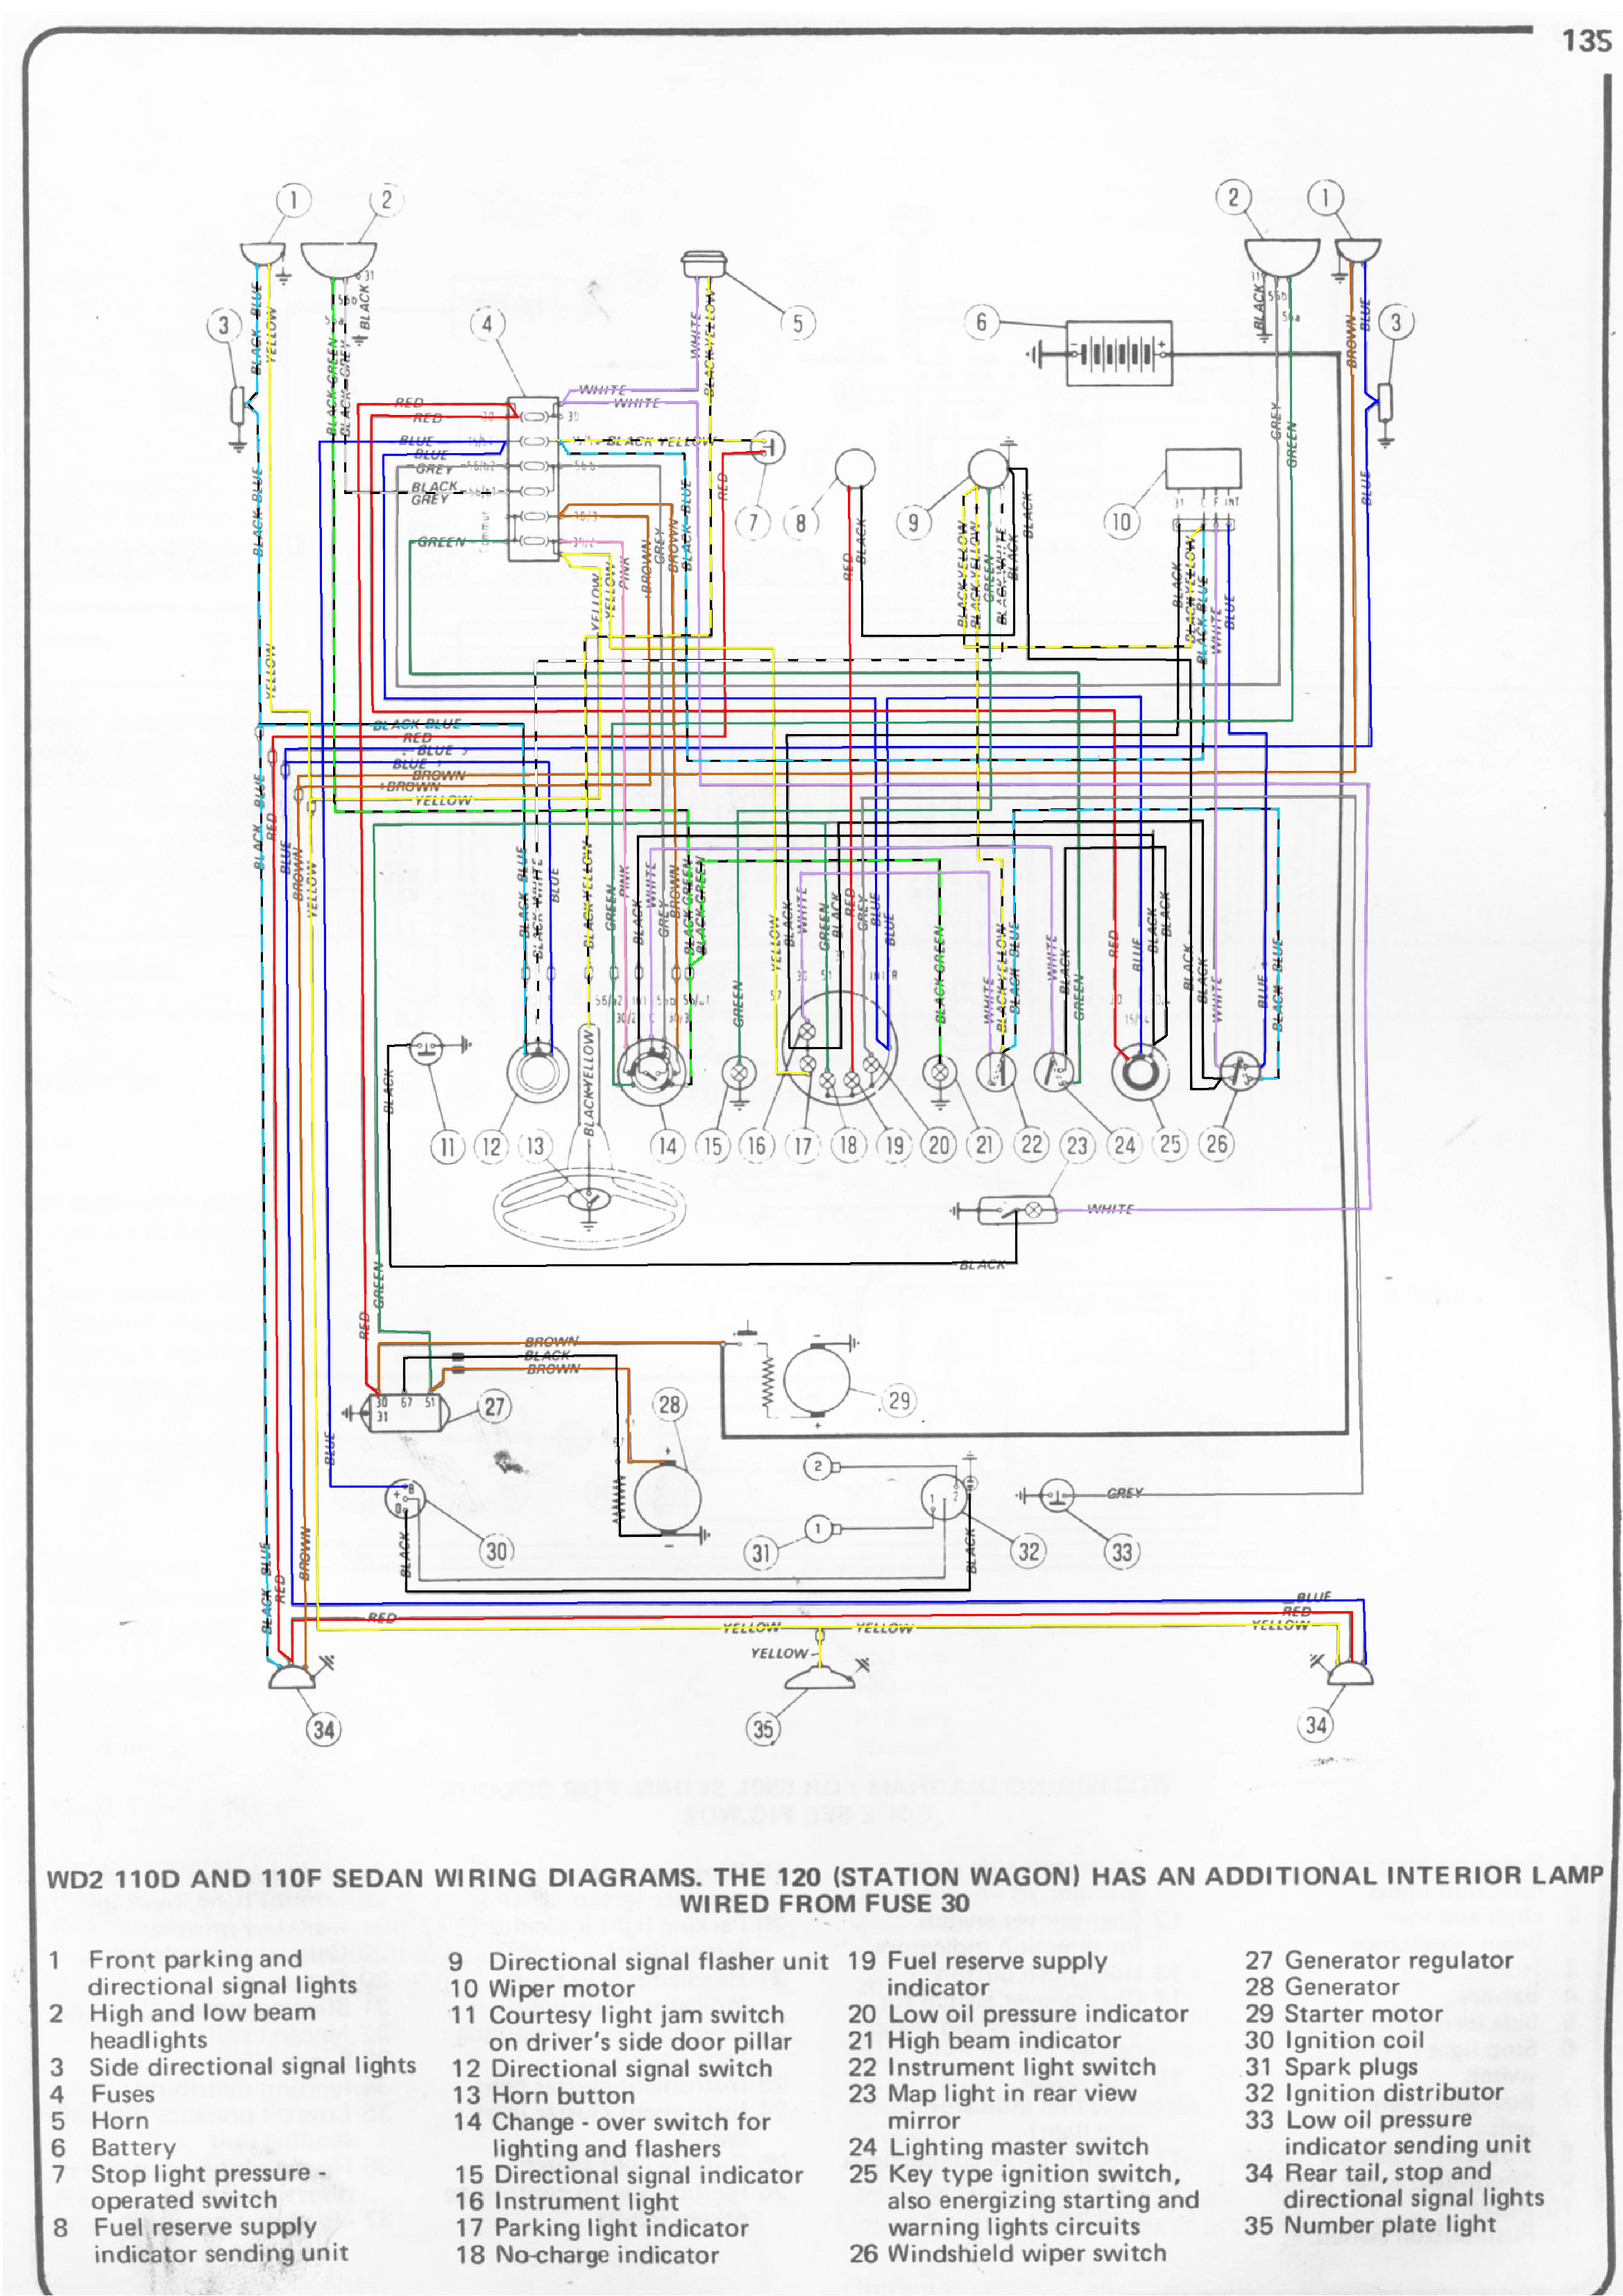 fiat ac wiring diagrams books of wiring diagram u2022 1969 fiat 500 wiring diagram fiat [ 2339 x 3309 Pixel ]